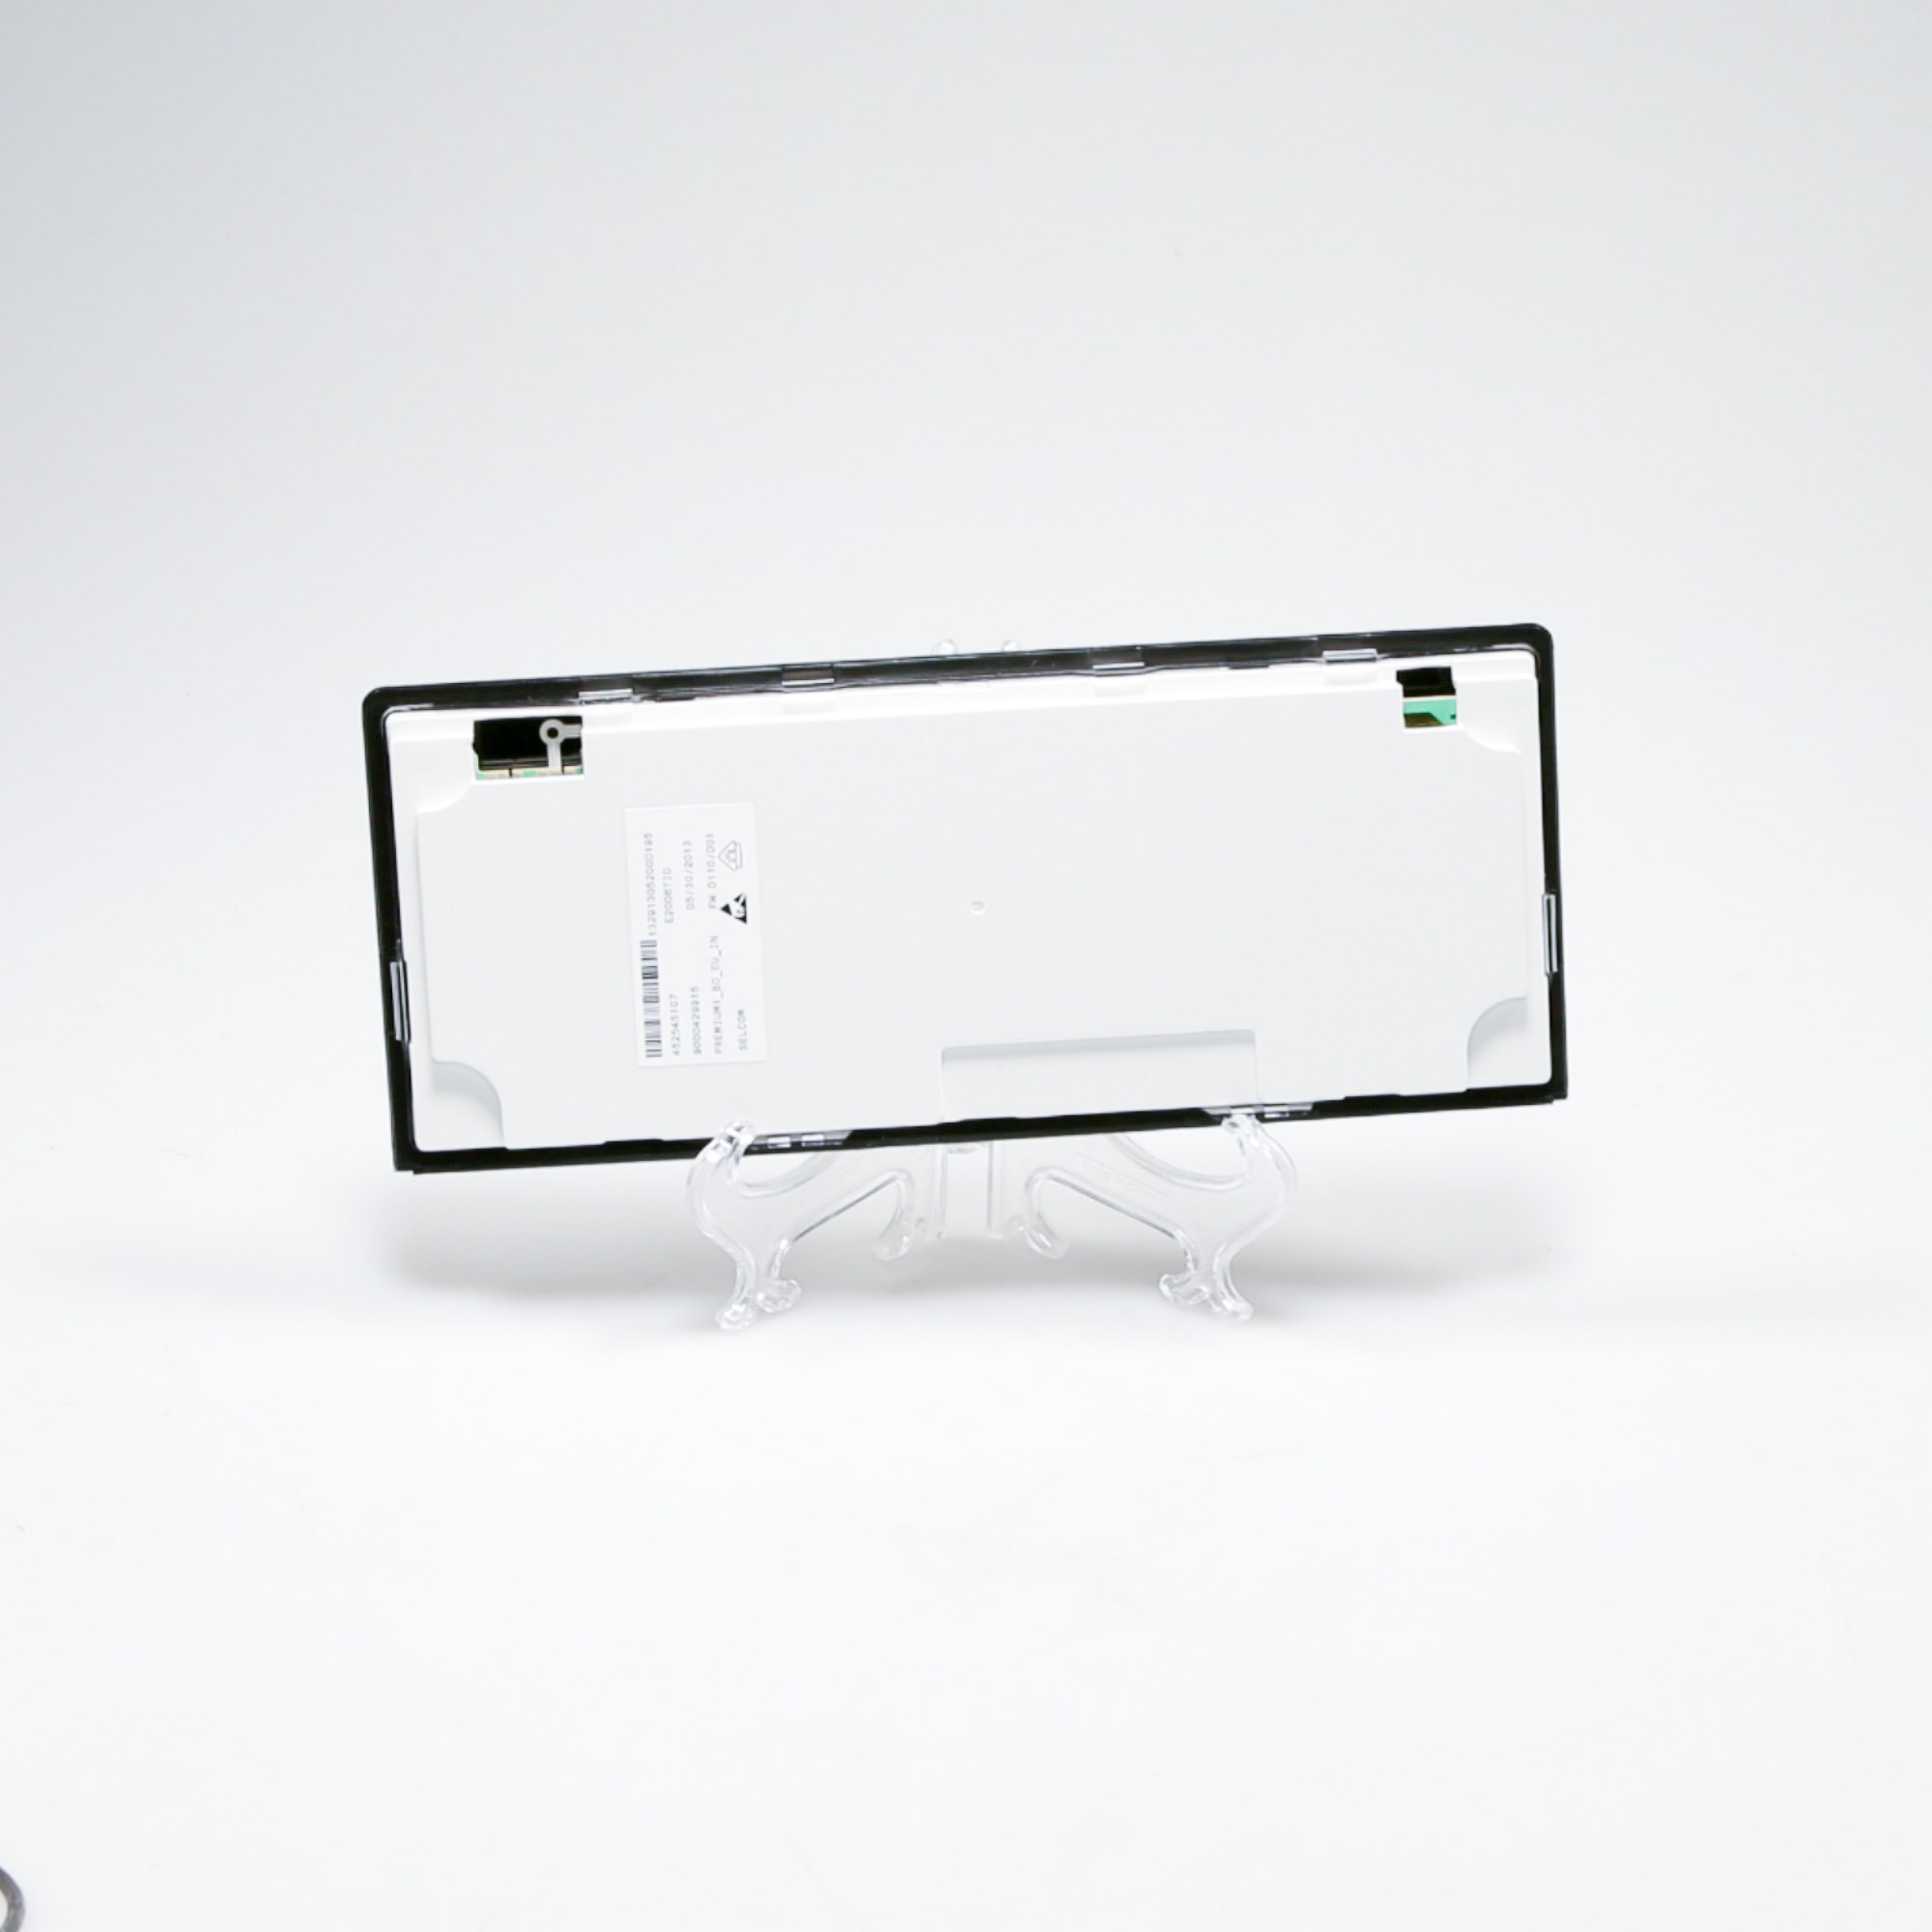 00648986 For Bosch Refrigerator Dispenser Control Board